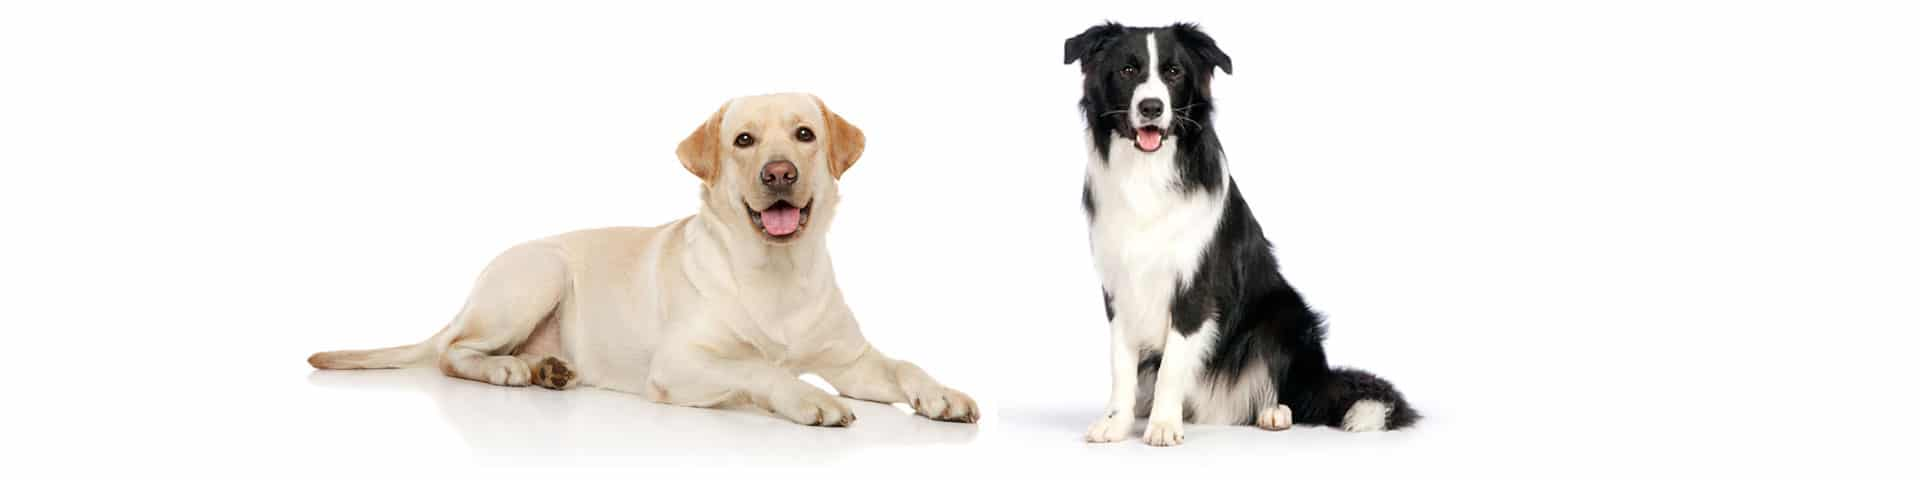 Border collie and lab